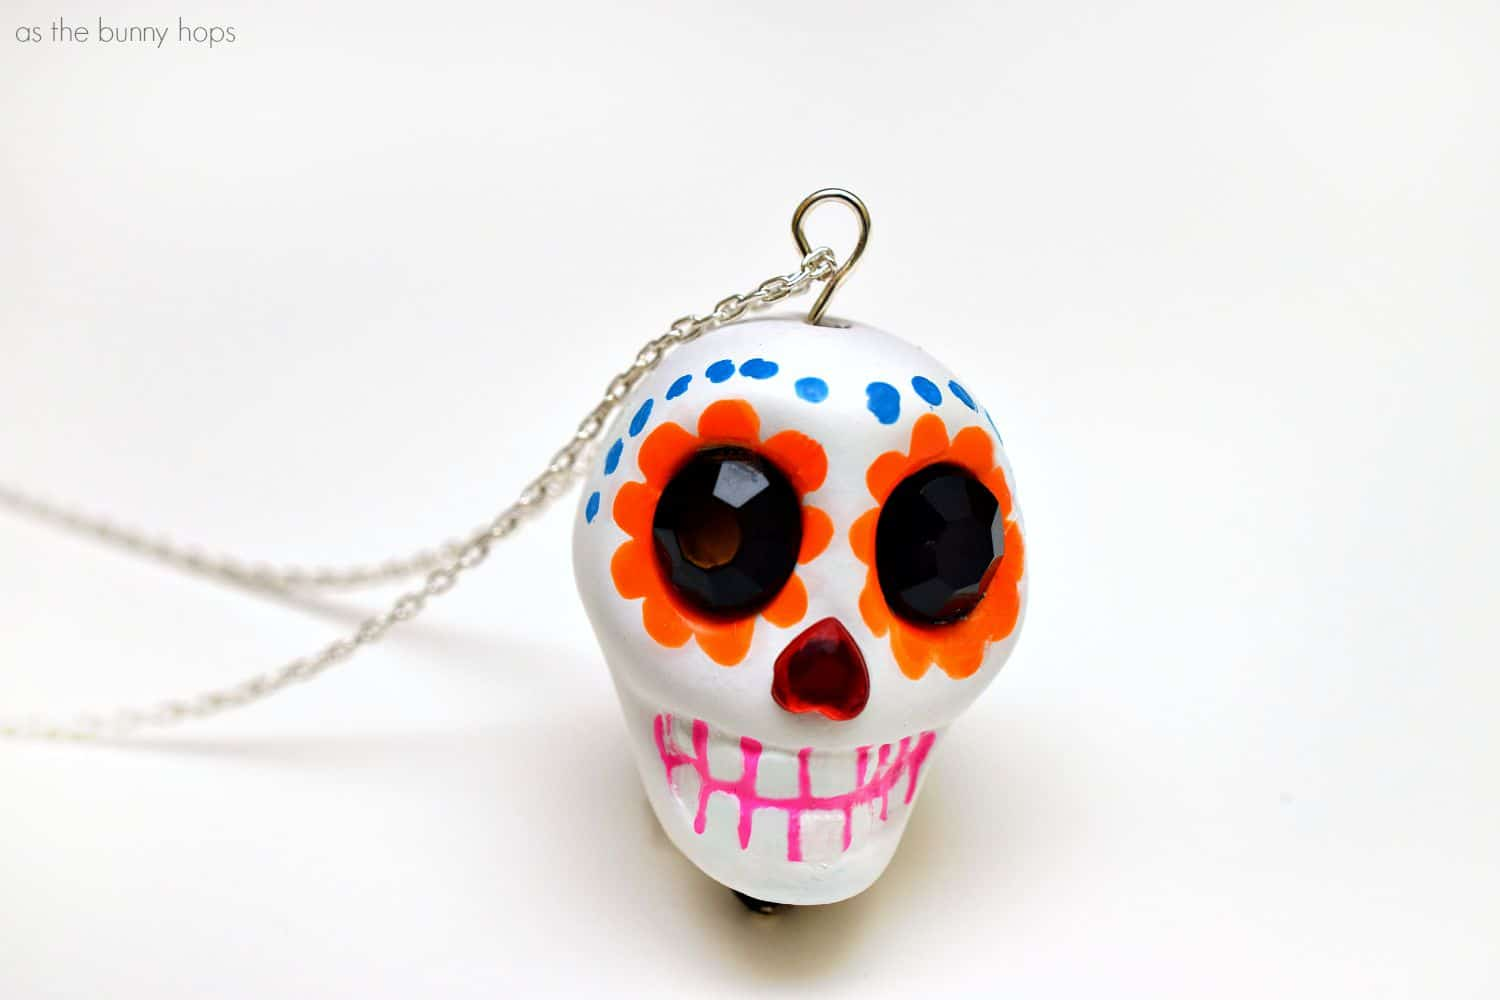 sugar peach products pendant giant things necklace sugarskull ornamental skull the